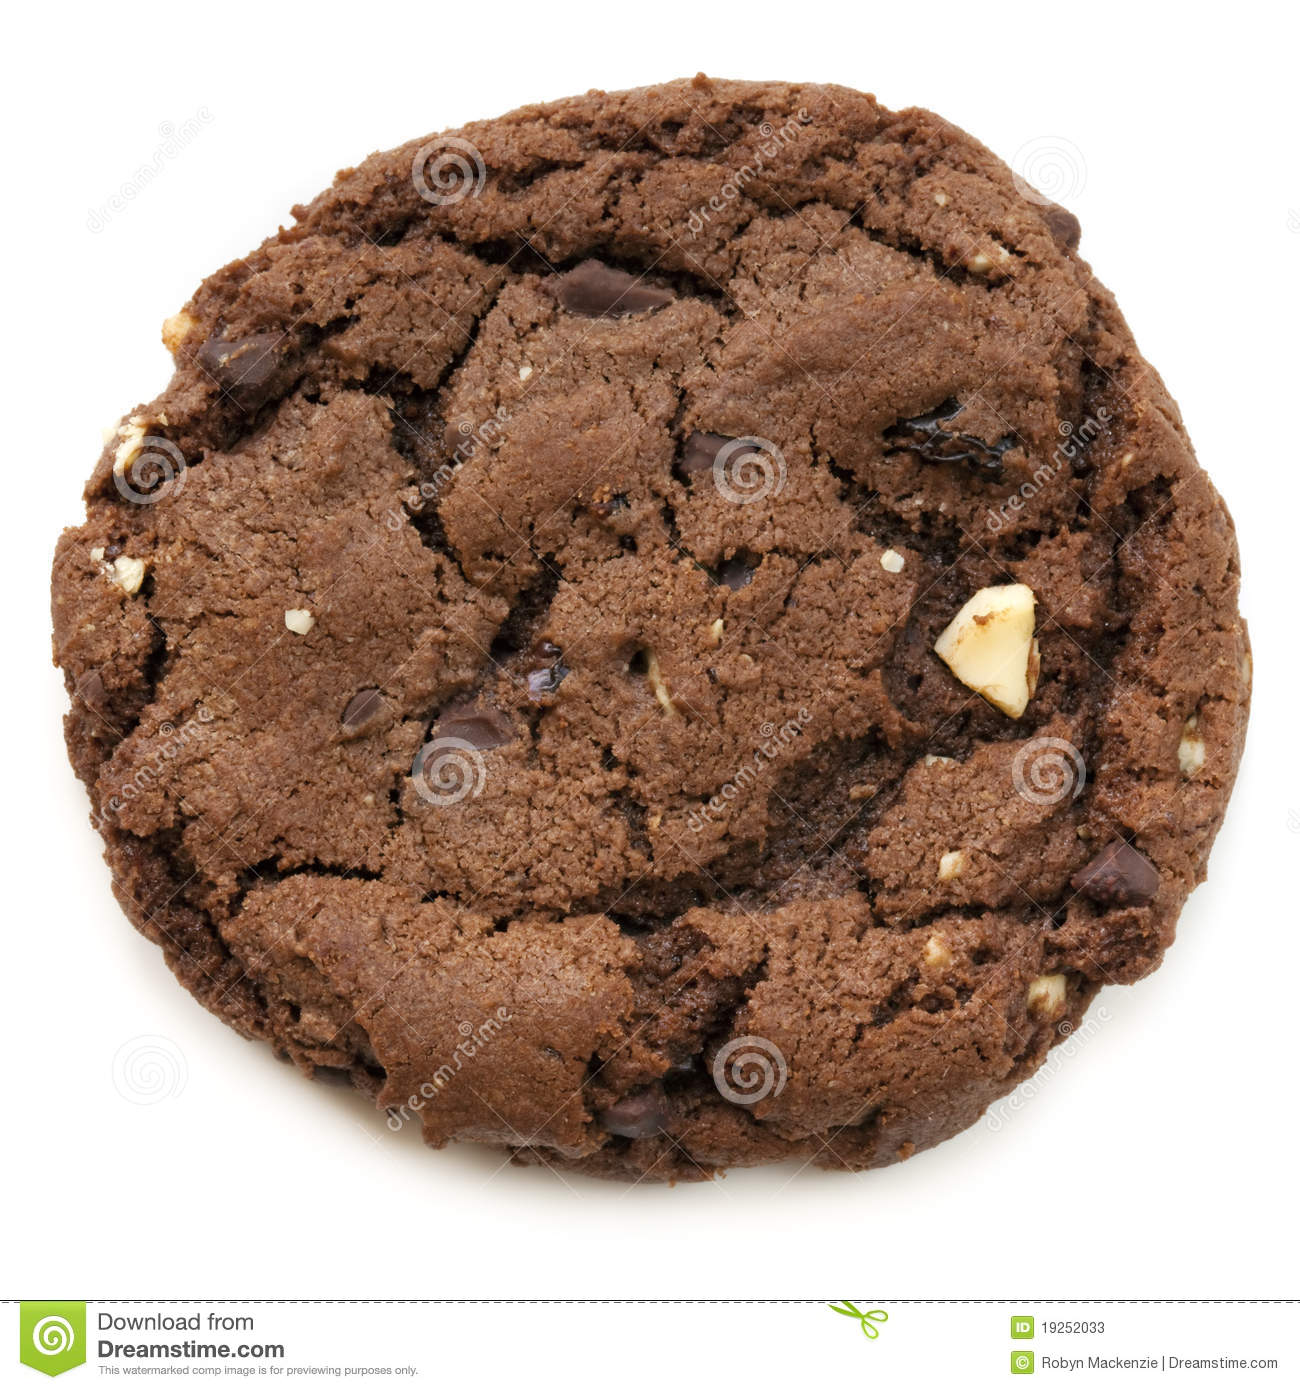 Large chocolate fudge cookie, isolated on white. Overhead view.